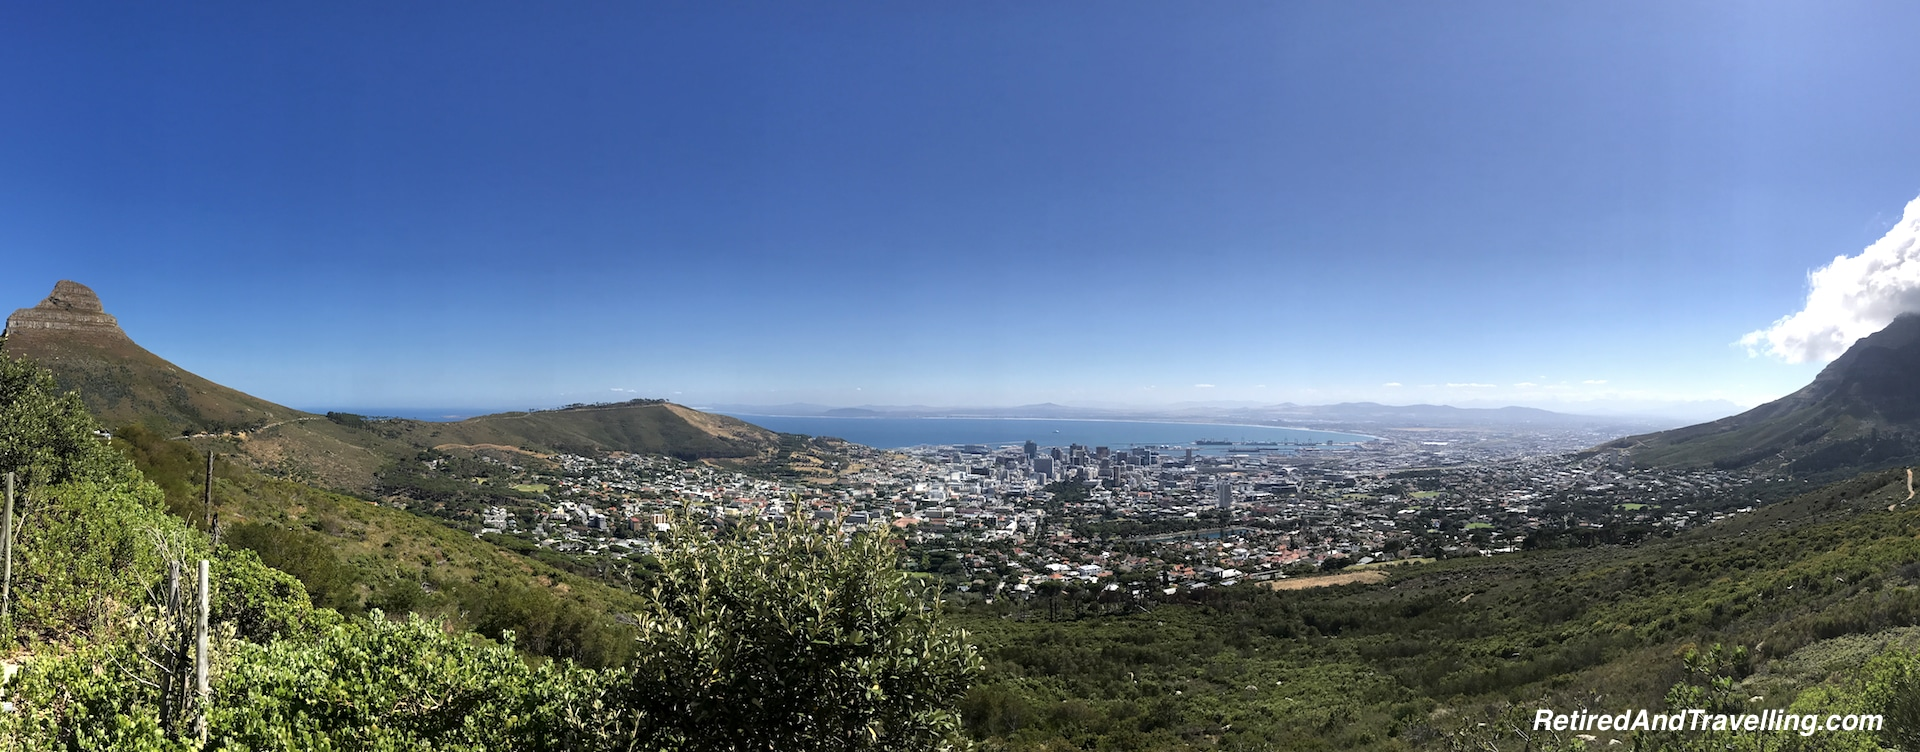 View From Table Mountain over Cape Town - Sea and Mountains Surround Cape Town.jpg